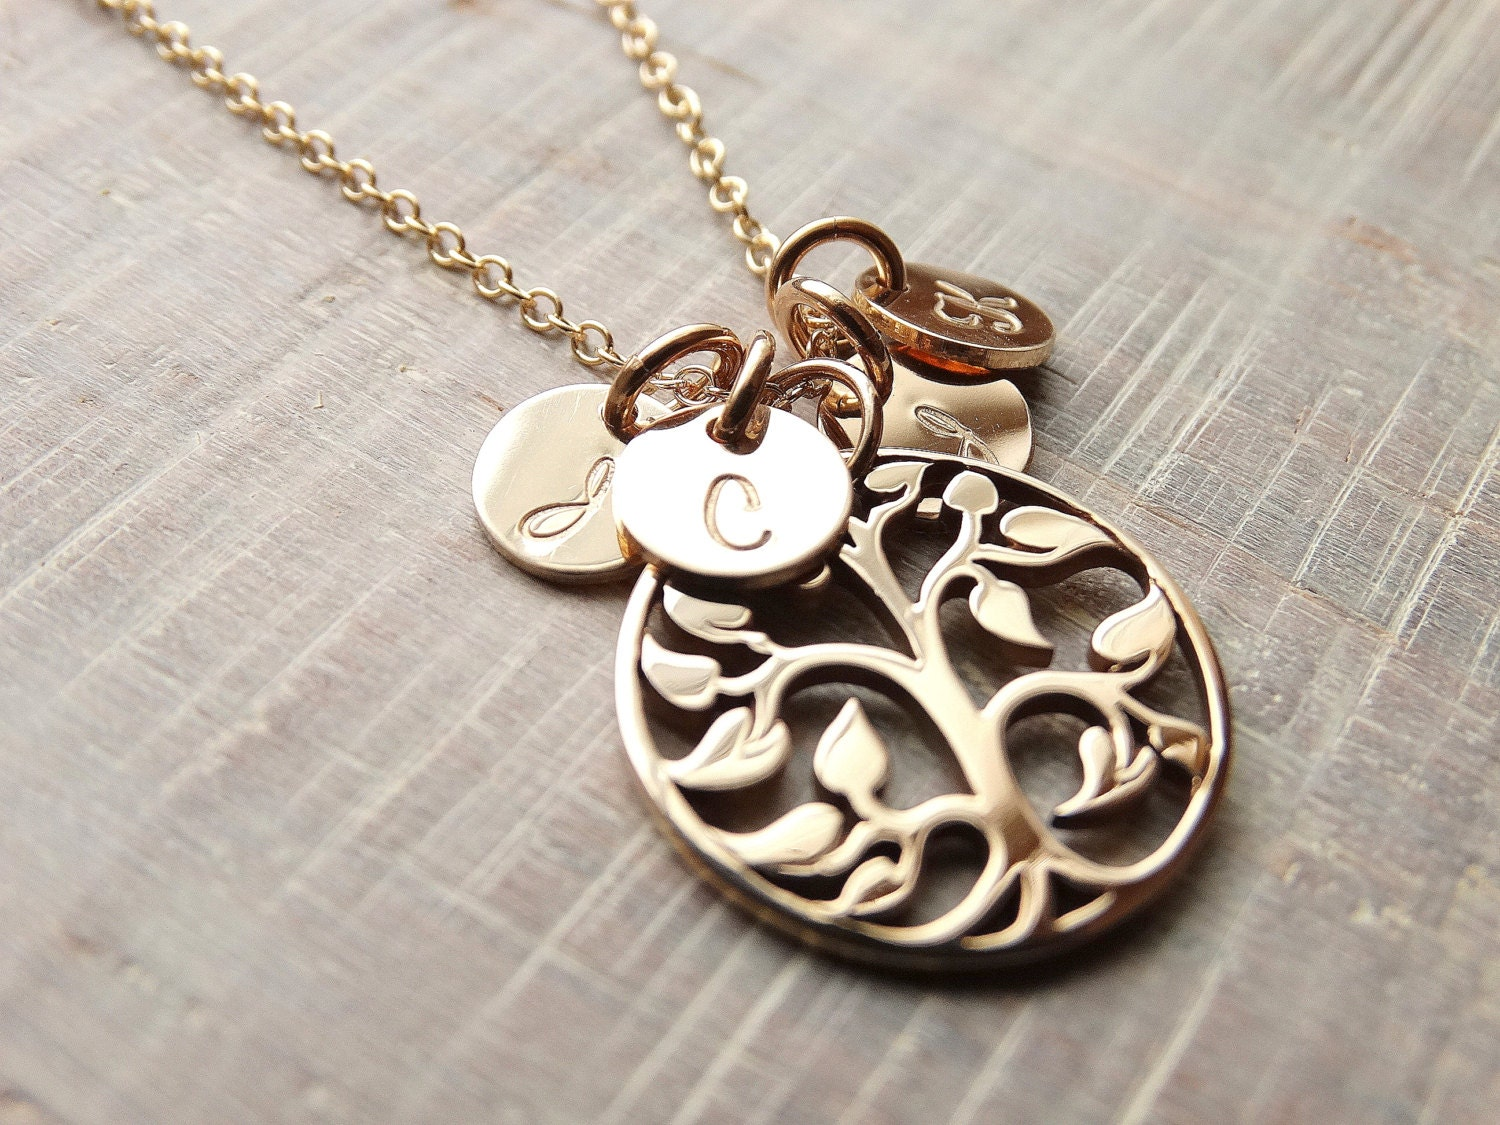 mothers necklace tree of life necklace jewelry necklace. Black Bedroom Furniture Sets. Home Design Ideas